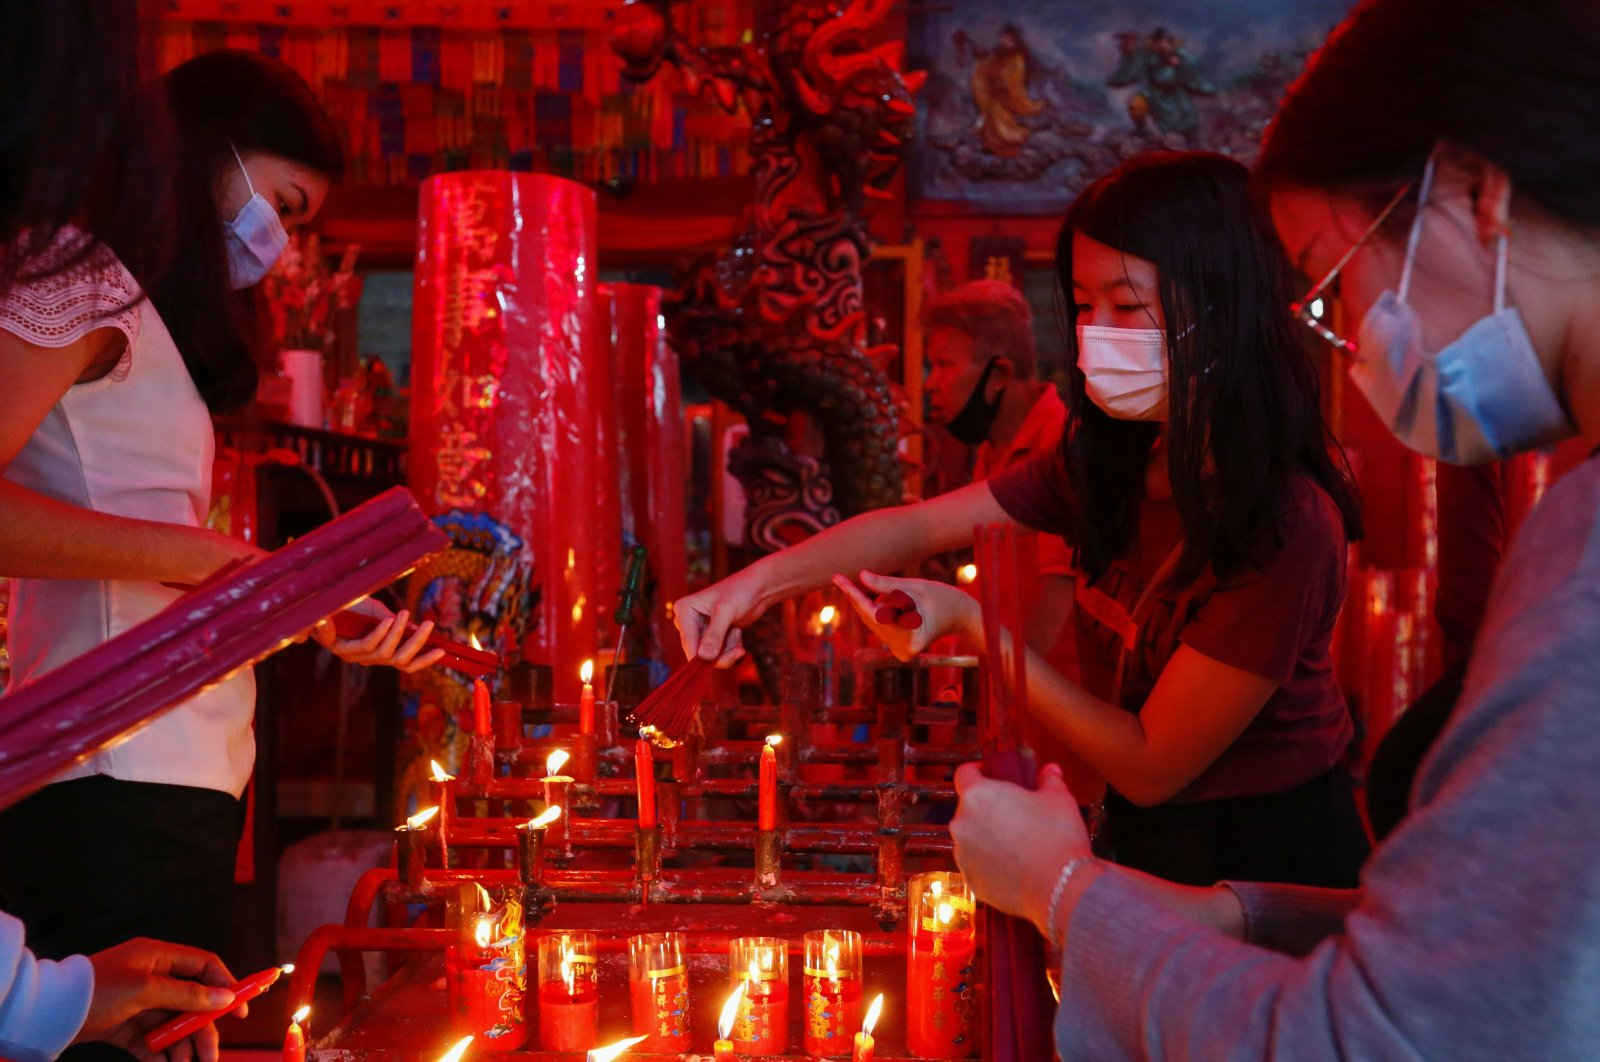 Worshippers wearing protective masks light incense sticks as they pray during Chinese Lunar New Year's eve at a temple in Jakarta, Indonesia, Feb. 11, 2021. (Reuters Photo)